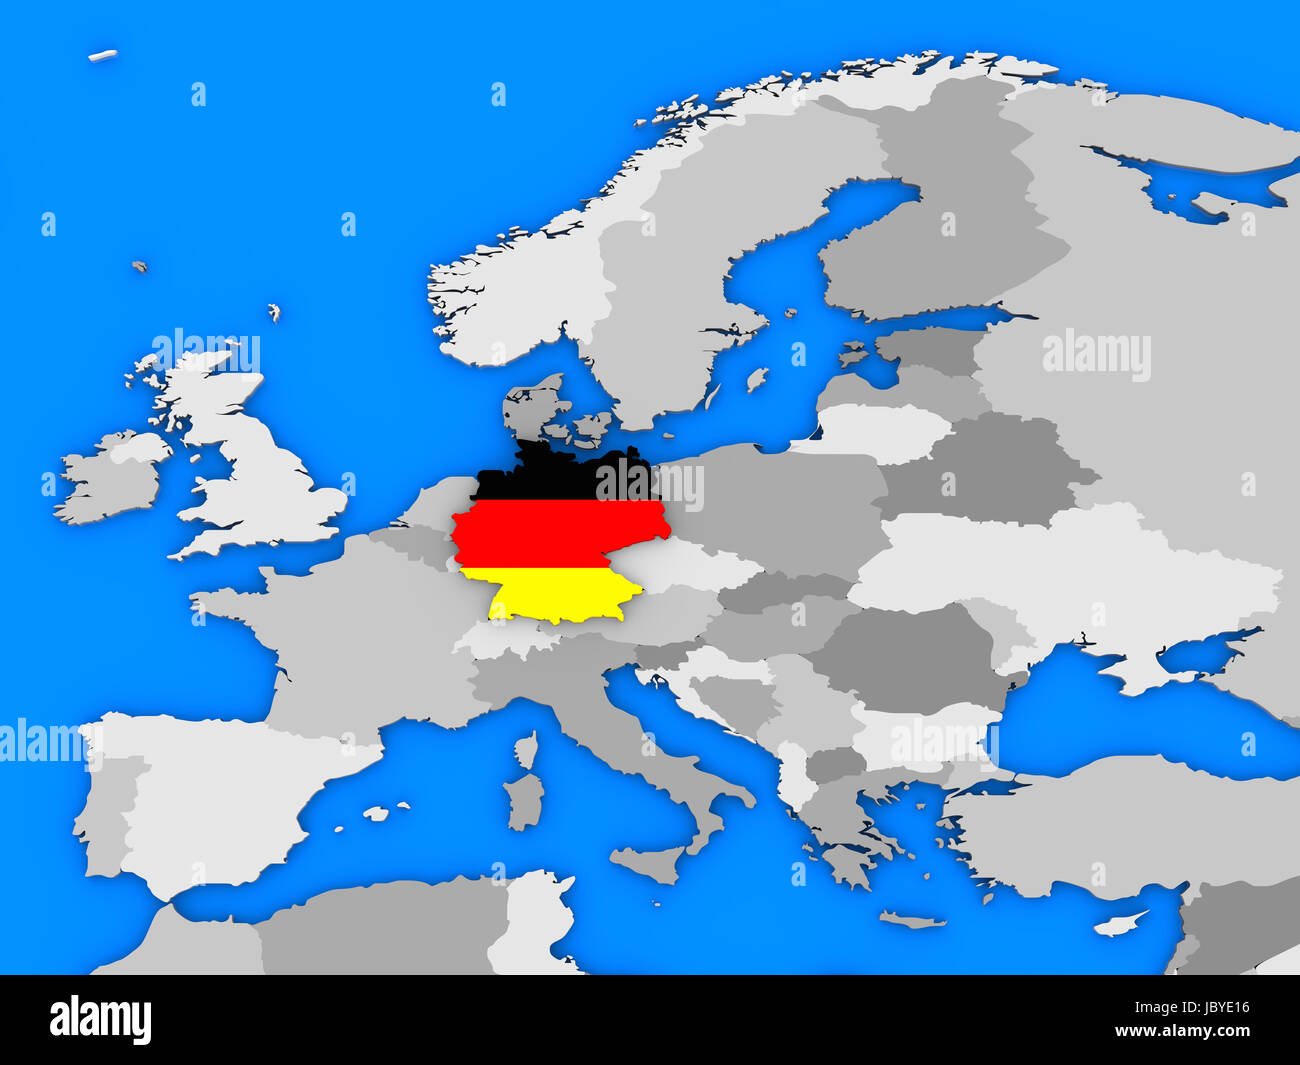 flag of germany in the shape of the country standing out of the map of europe